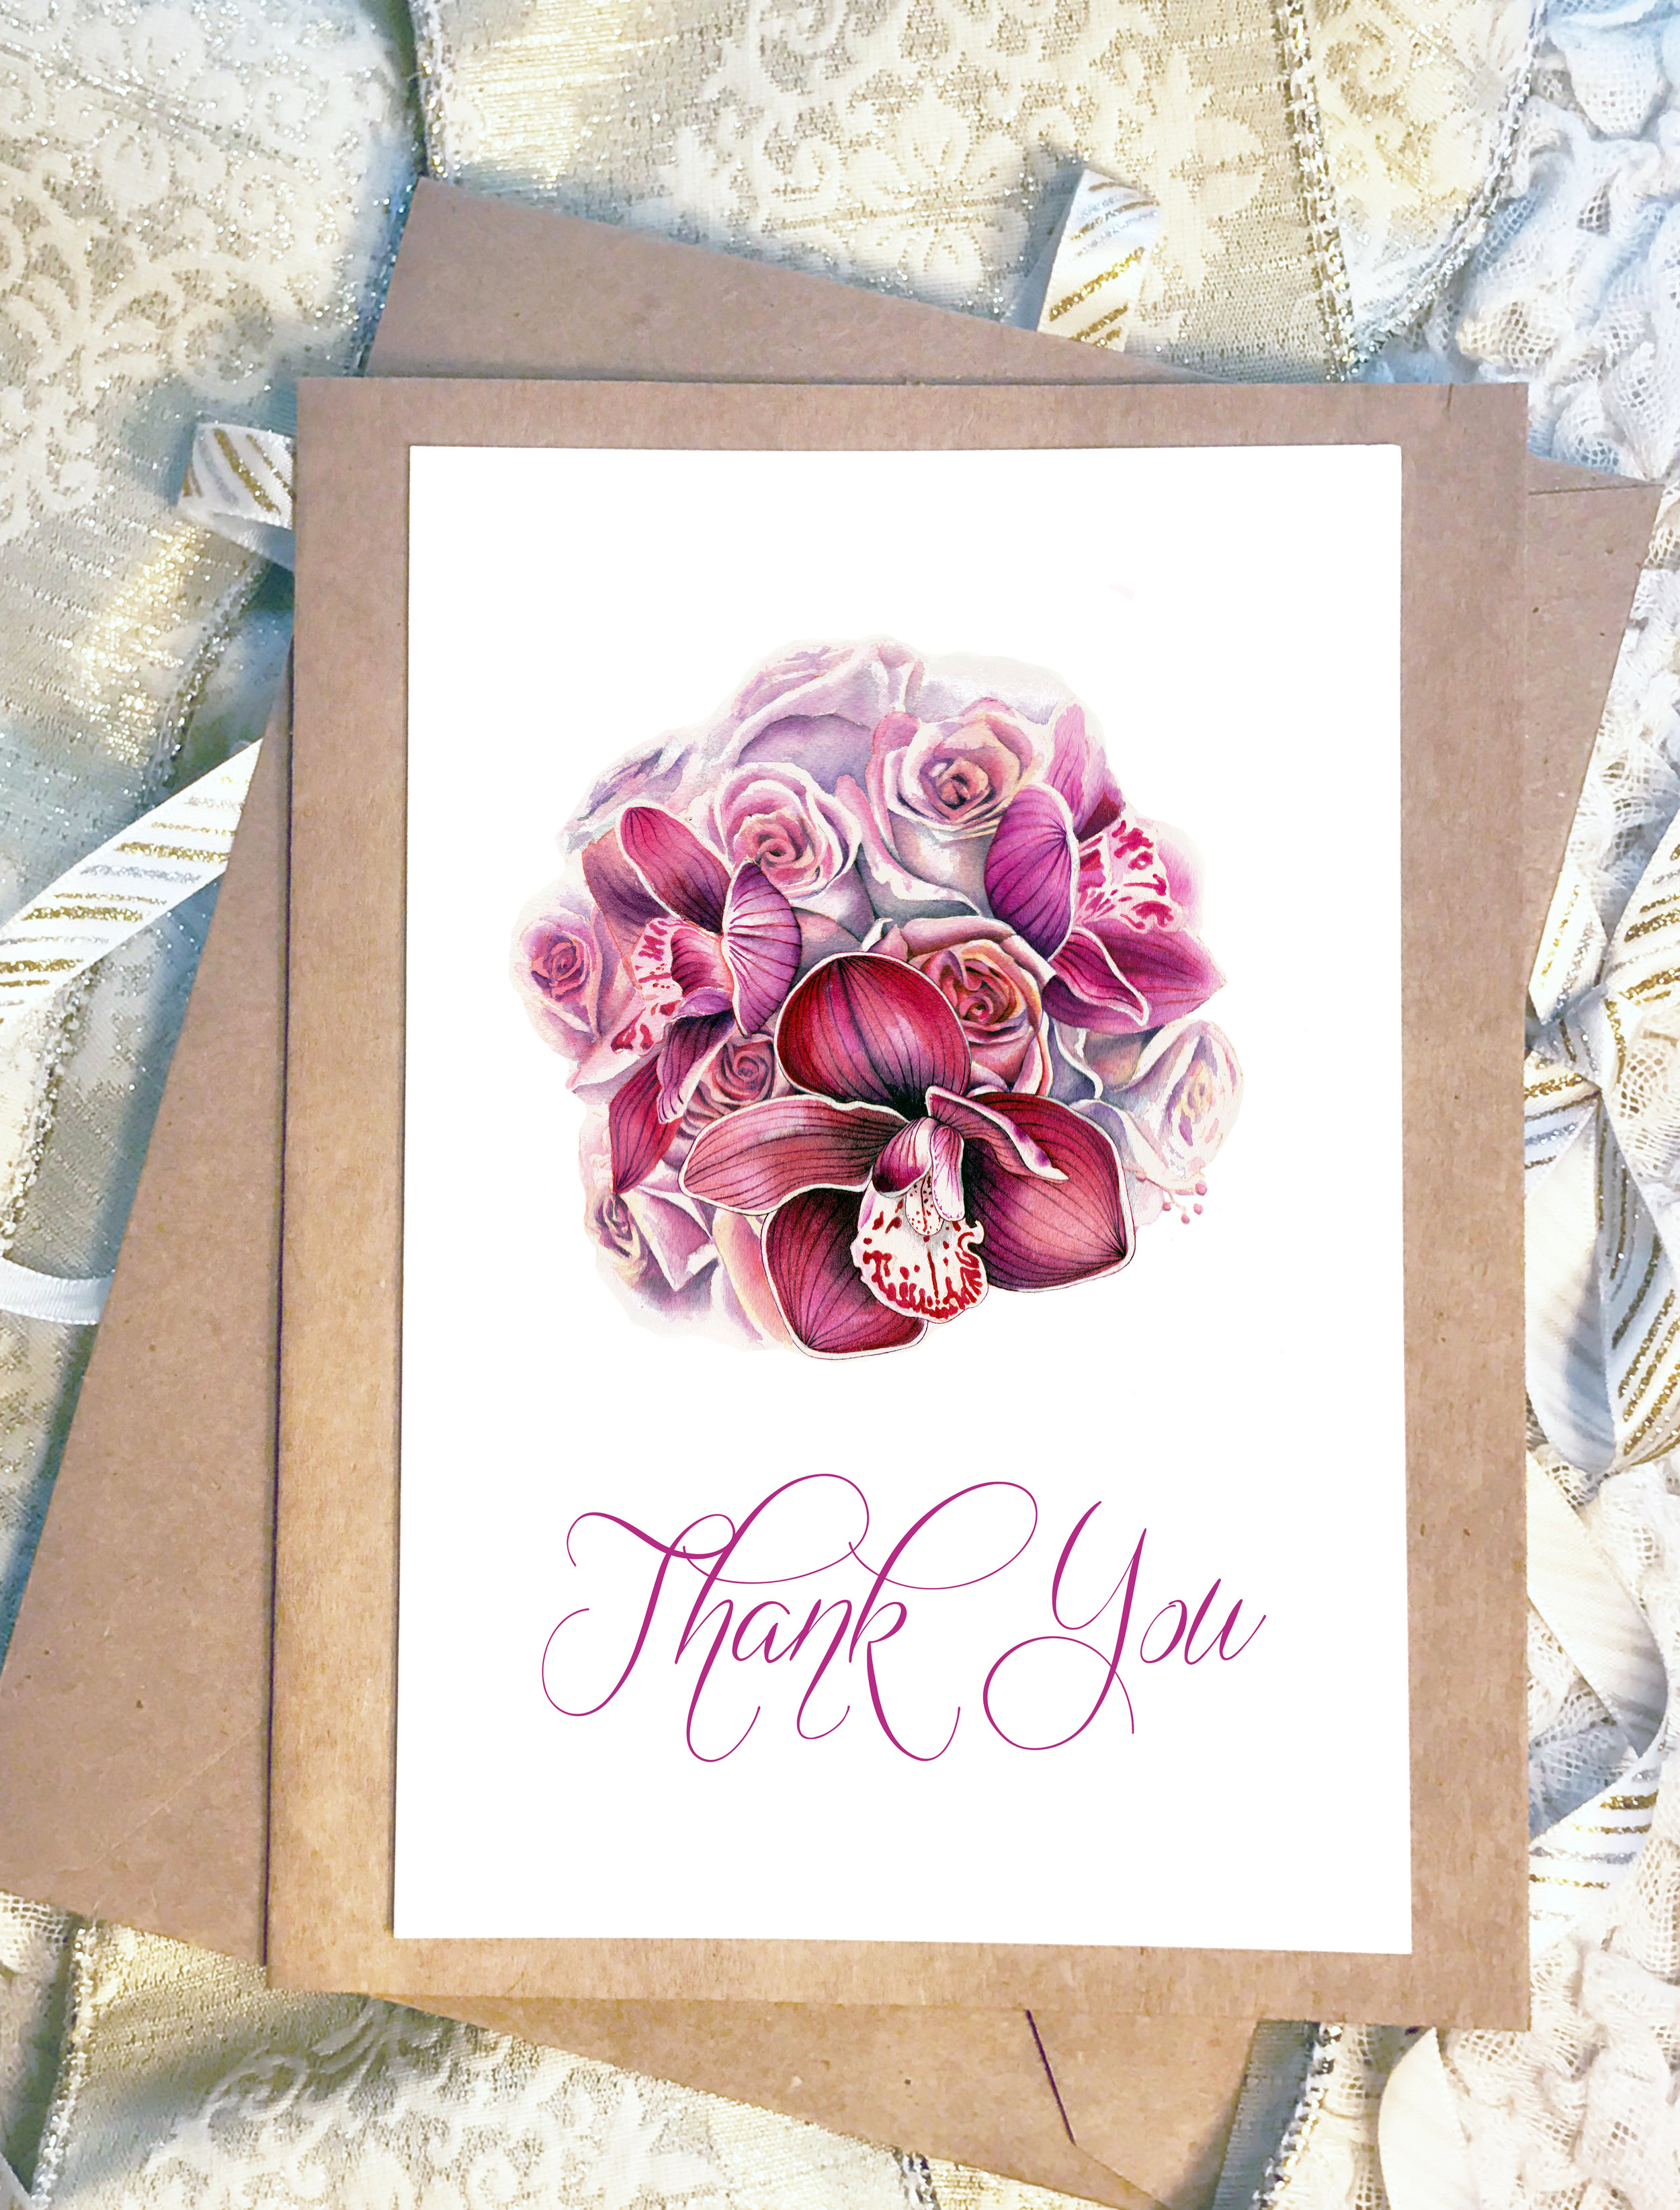 - Thank-you Cards packages:• 25 custom cards/envelopes $50• 50 custom cards/envelopes $90• 100 custom cards/envelopes $150• 250 custom cards/envelopes $350•500 custom cards/envelopes $500• larger quantities, please contact us for bulk pricing!